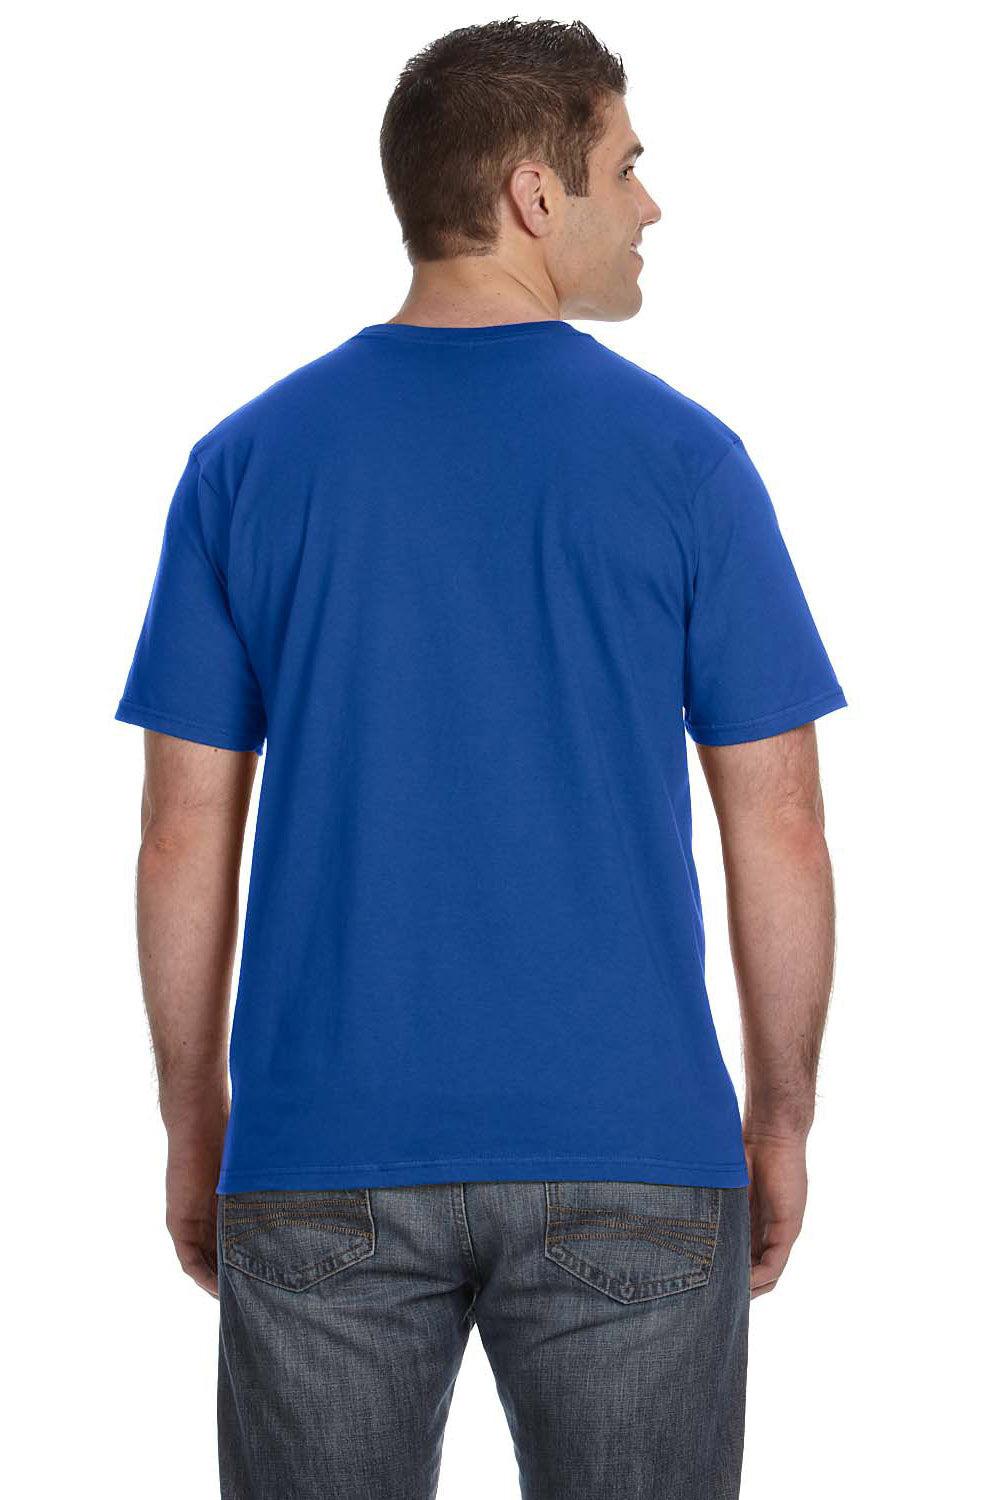 Anvil 980 Mens Short Sleeve Crewneck T-Shirt Royal Blue Back